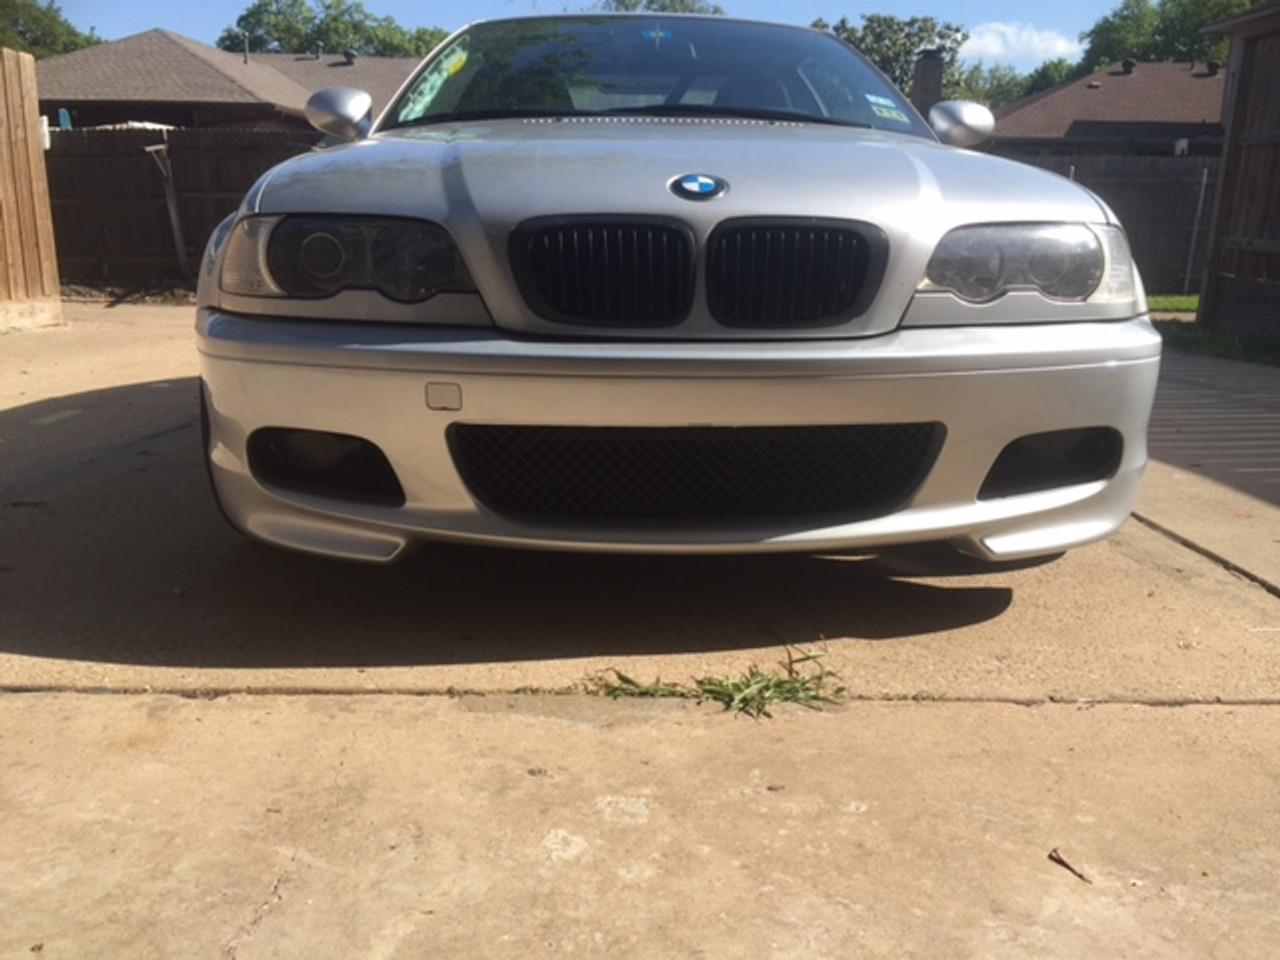 Fits with ZHP and Mtech2 front bumper cover